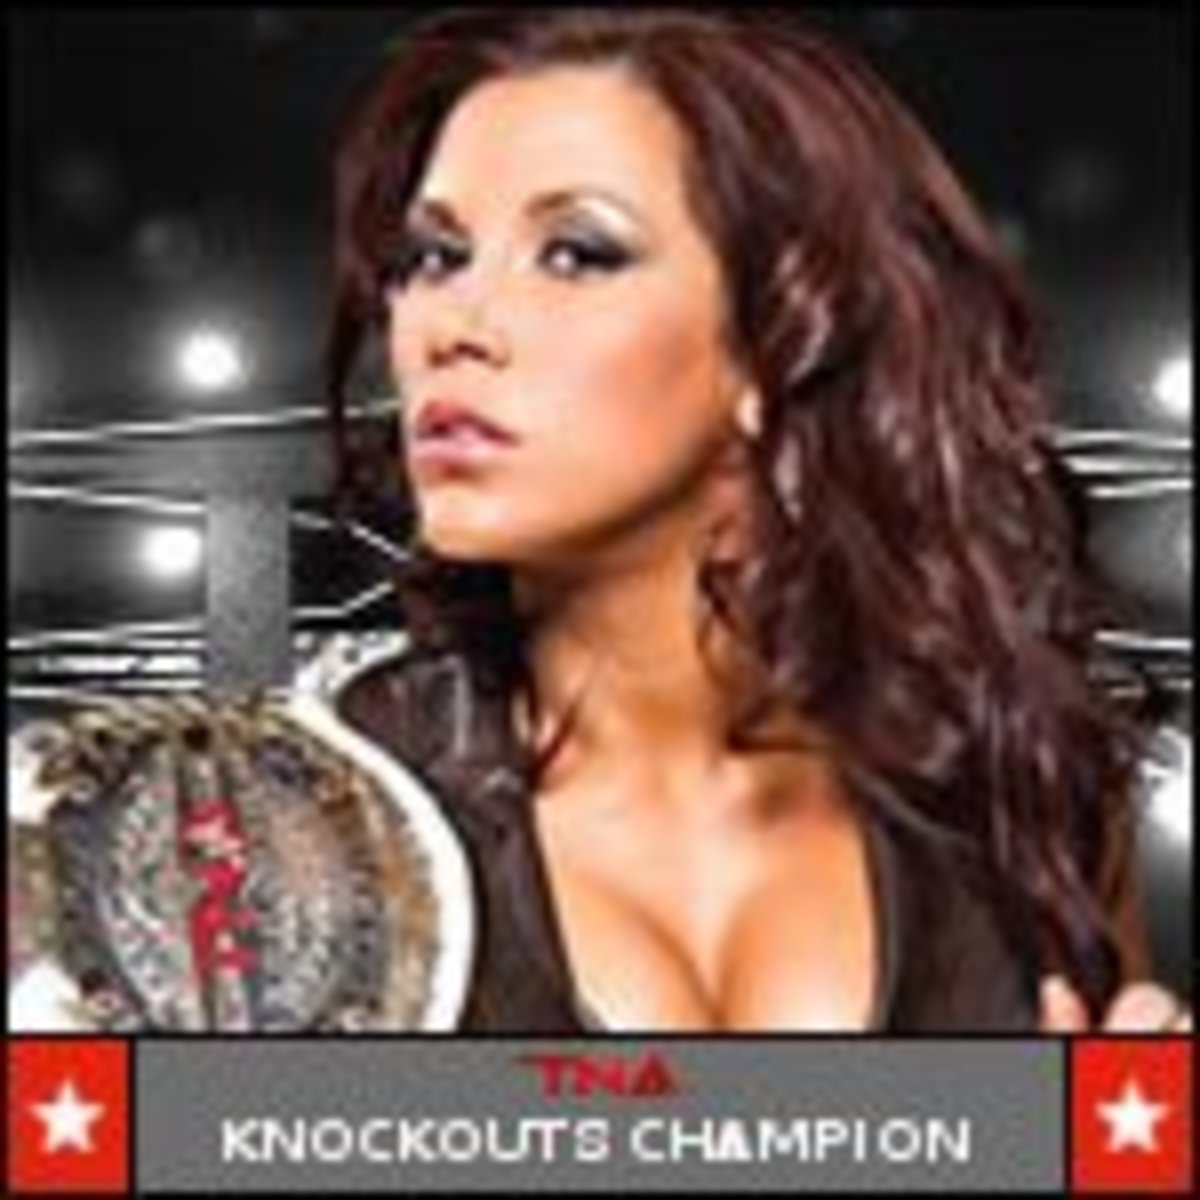 List of Current TNA Wrestling Knockouts